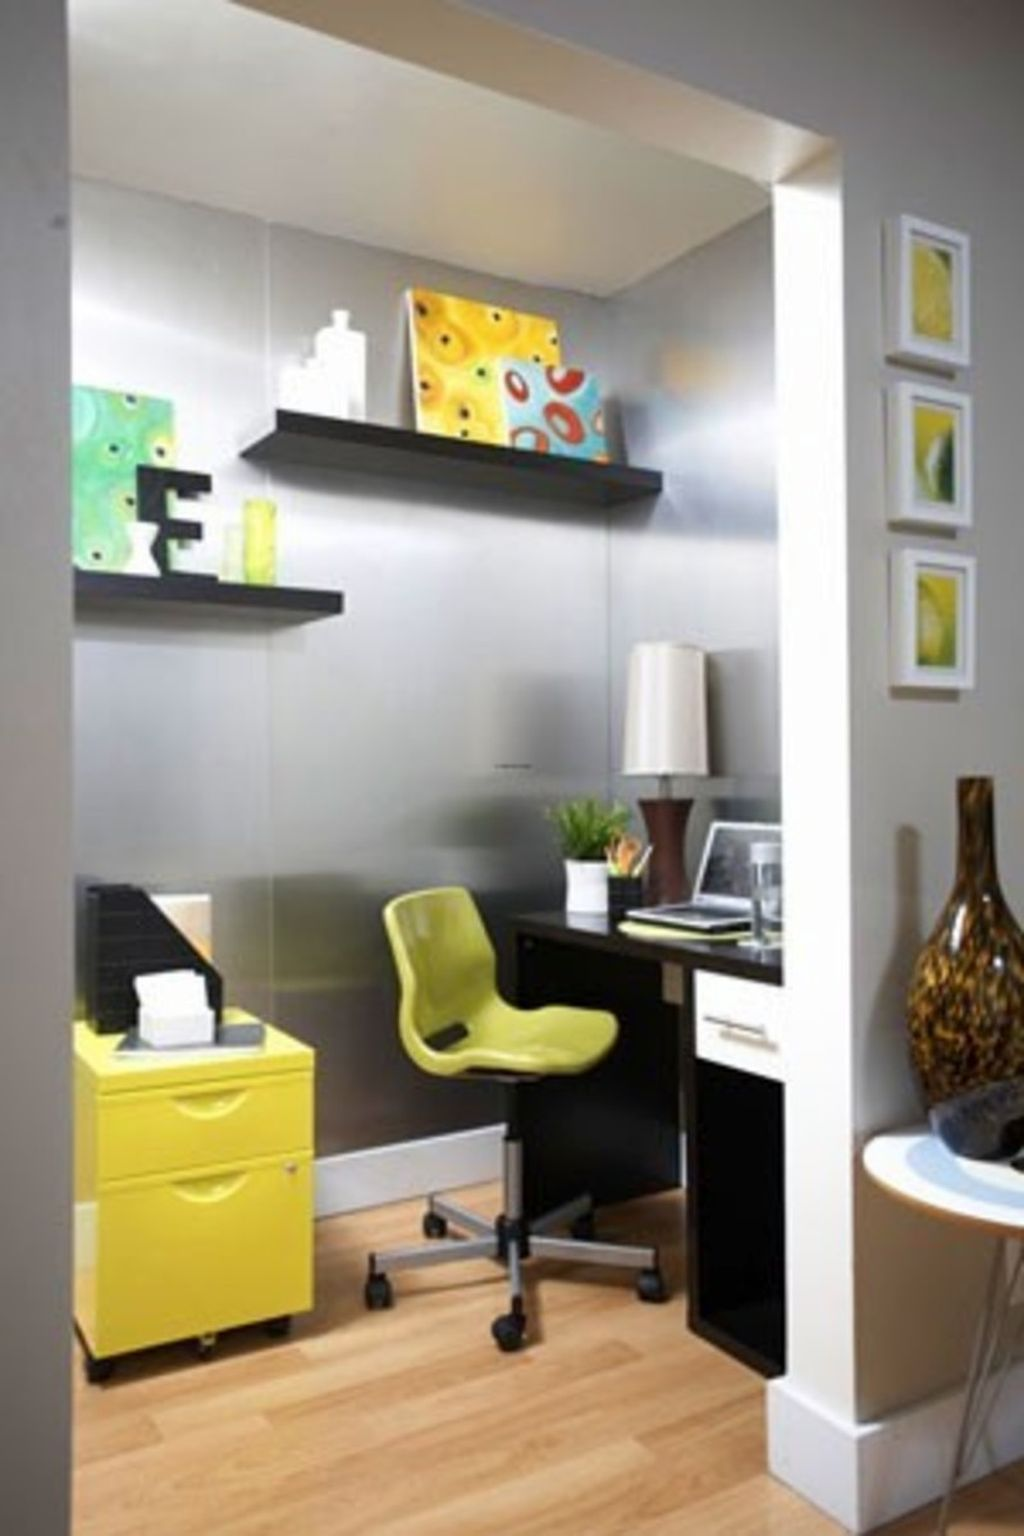 20 inspiring home office design ideas for small spaces - Small space modern furniture ideas ...